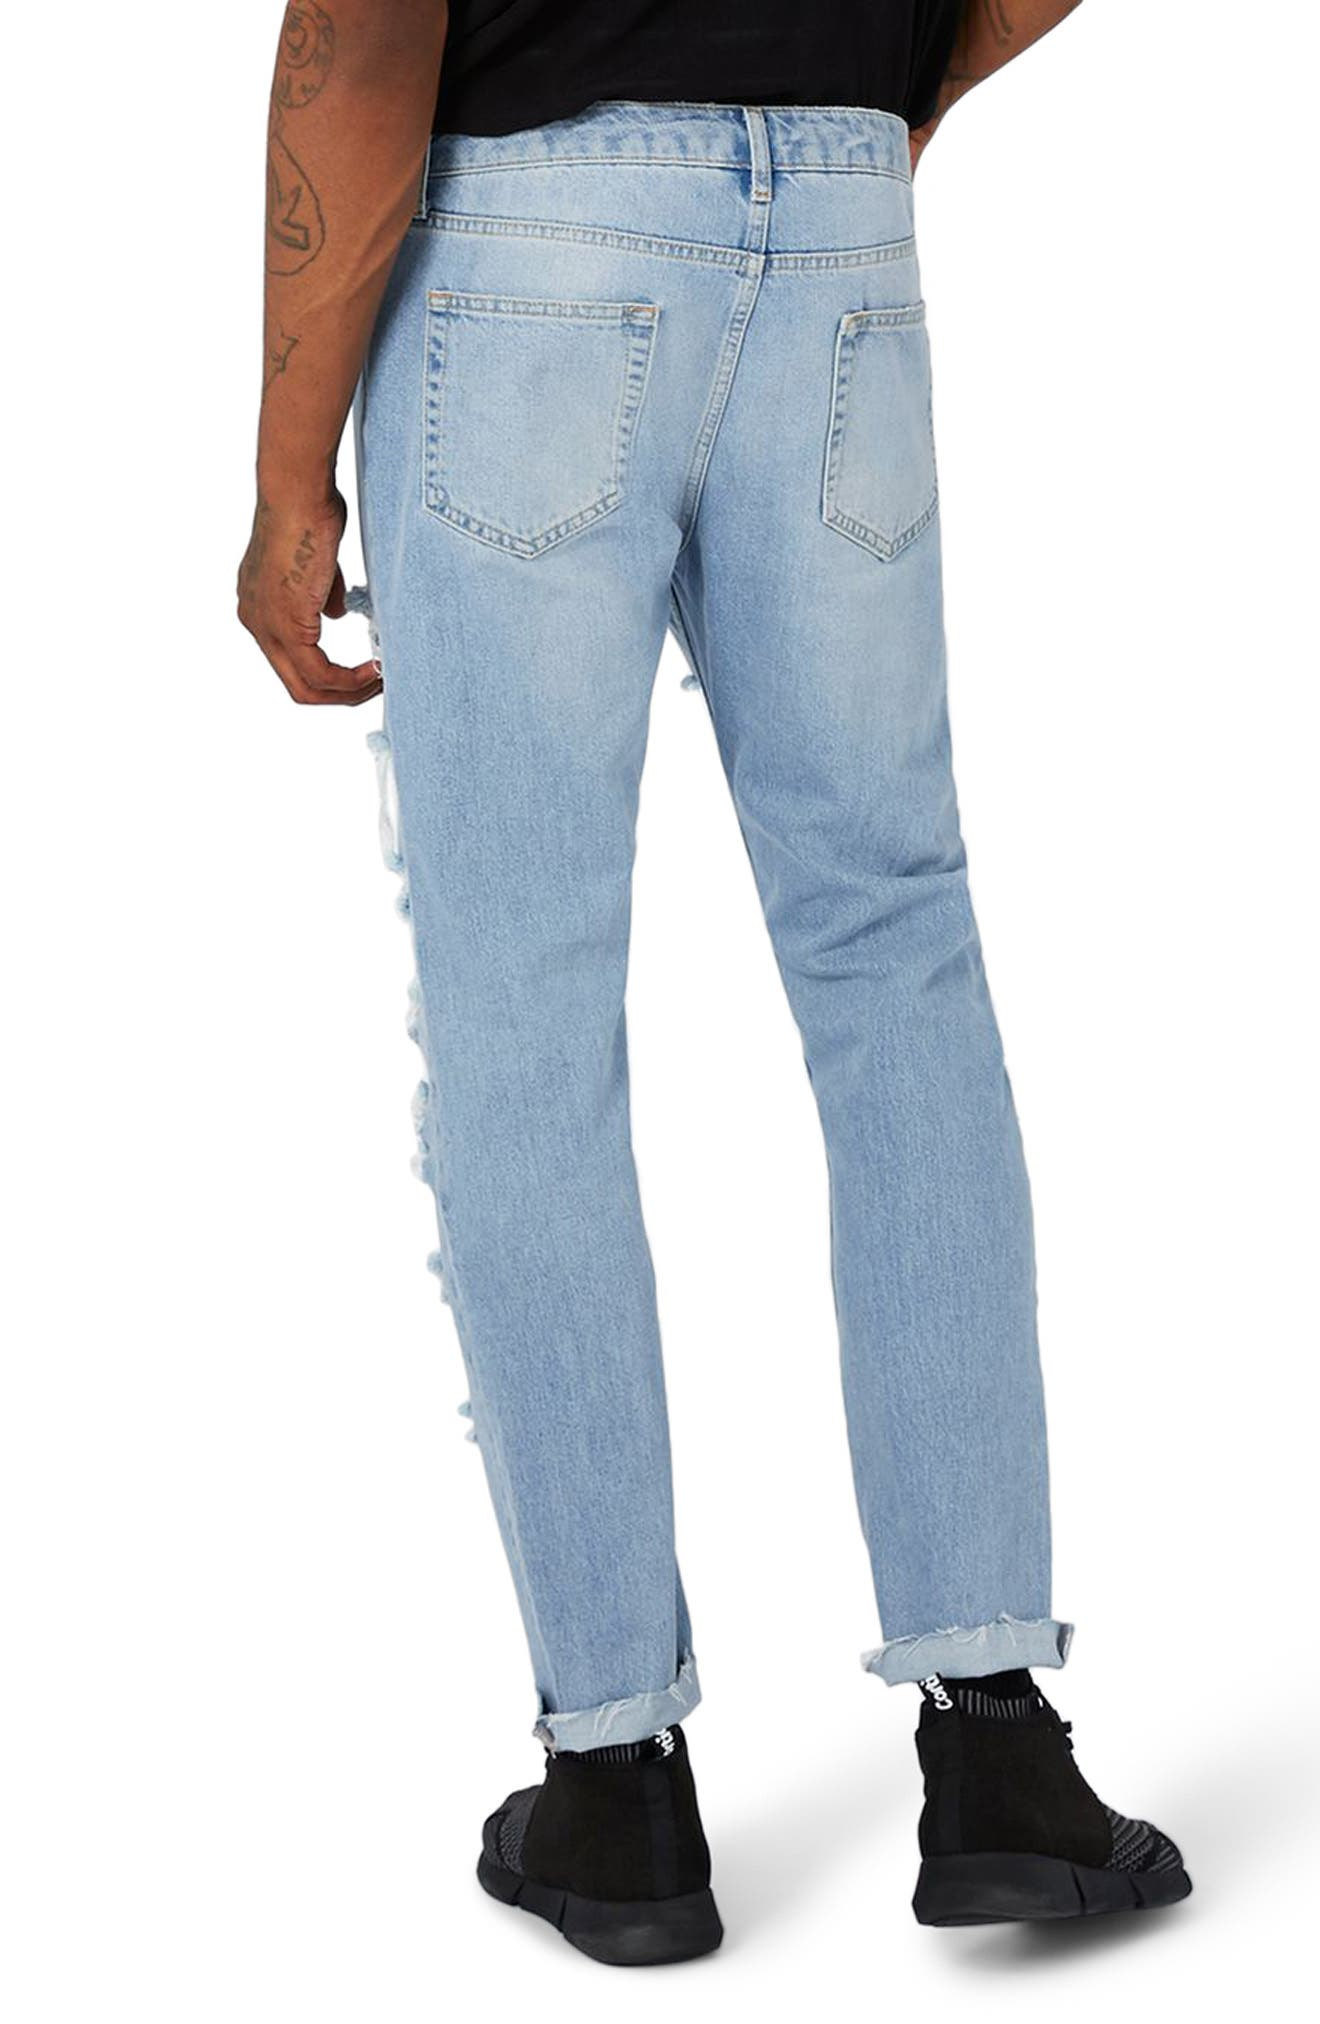 AAA Collection Shredded Skinny Jeans,                             Alternate thumbnail 2, color,                             400